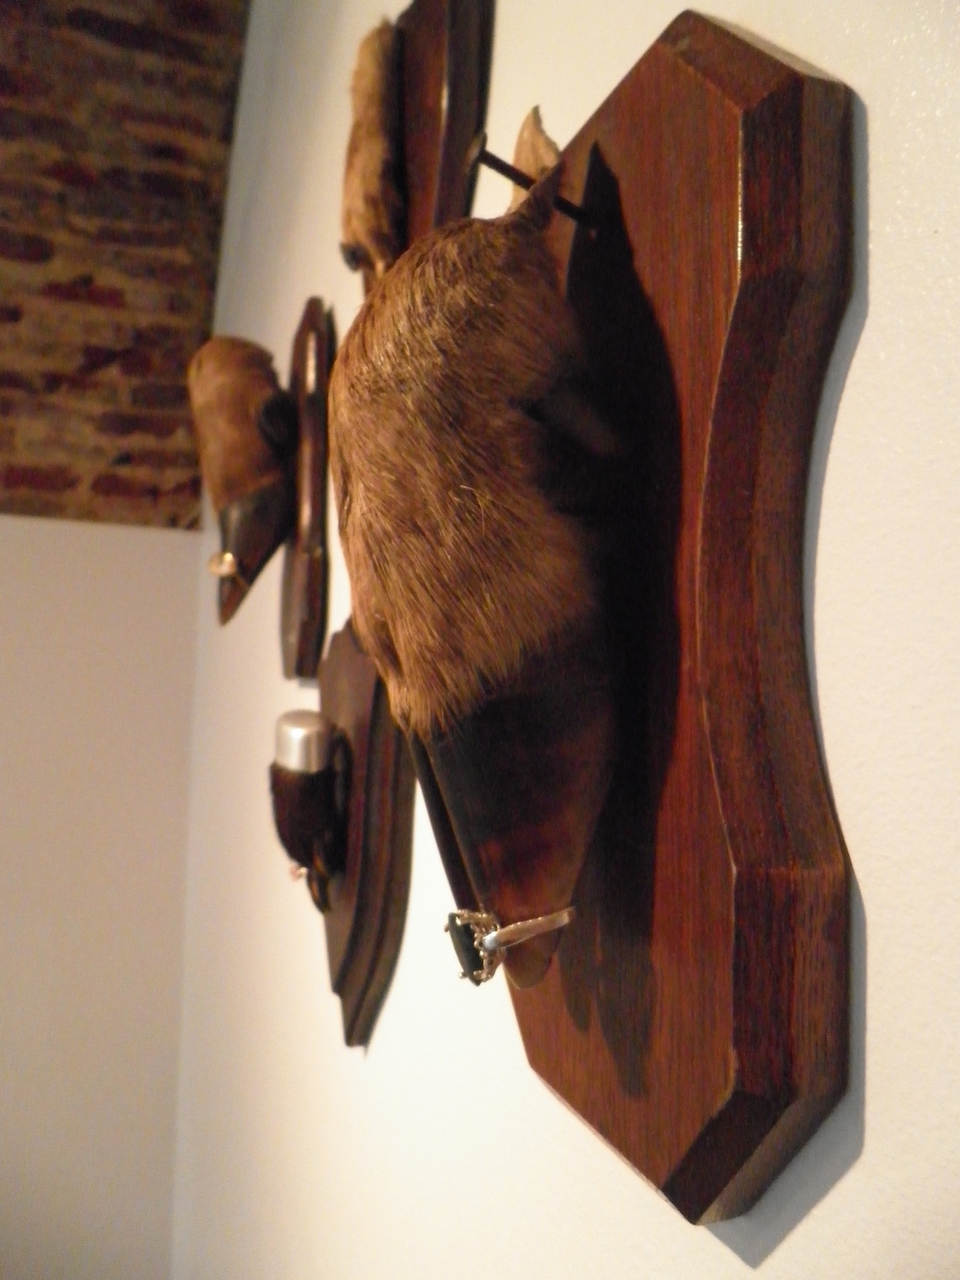 Galeria Articula, Lissabon, ring, hout, taxidermie